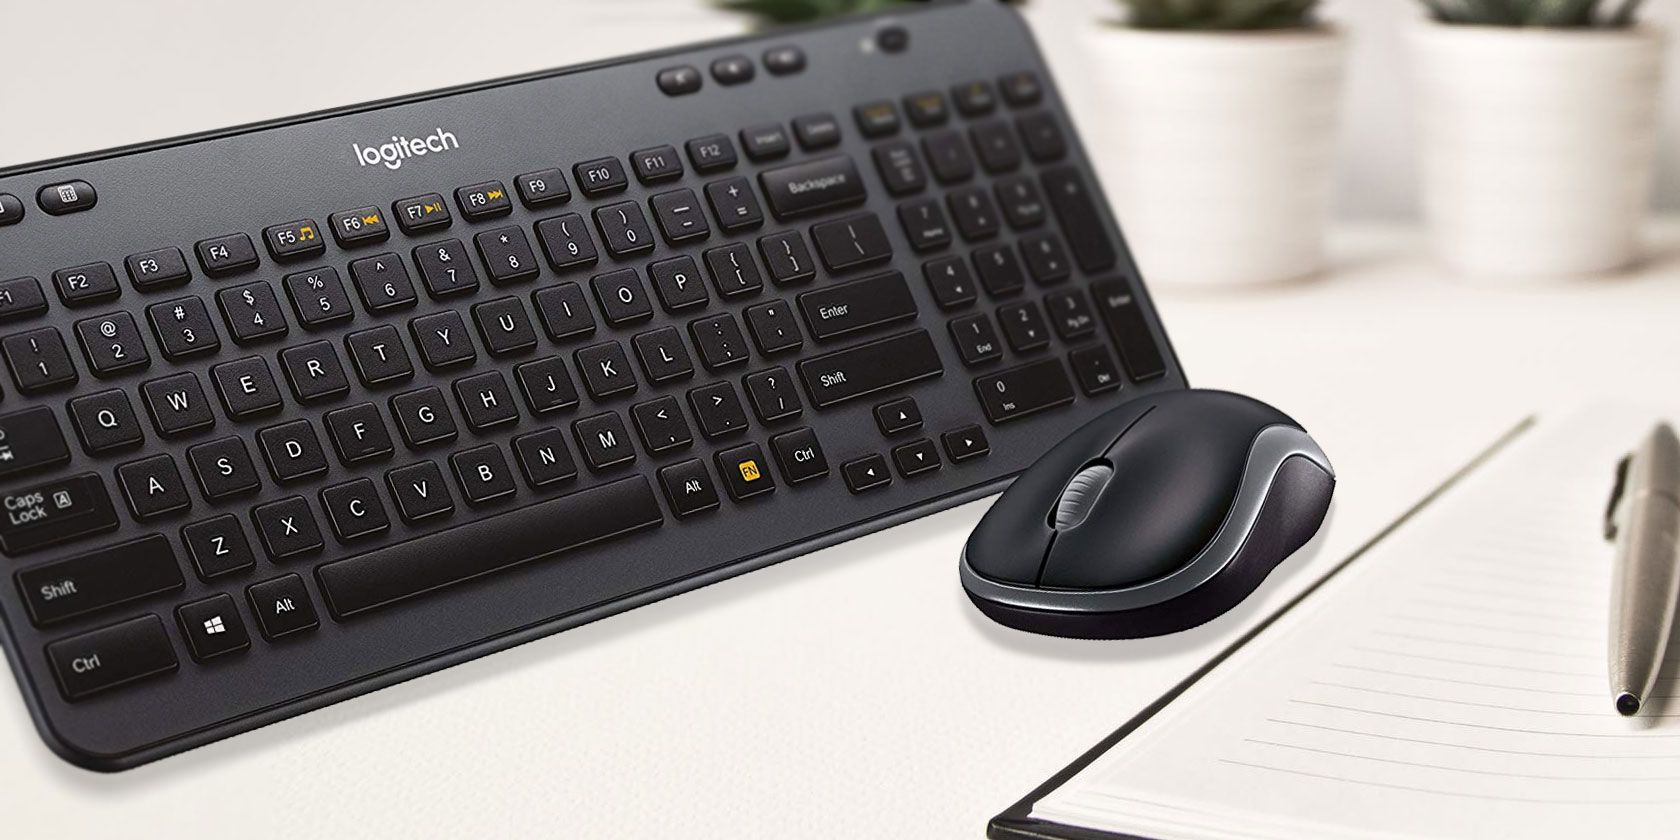 Best Wireless Keyboard 2020.The 6 Best Wireless Mouse And Keyboard Combos For All